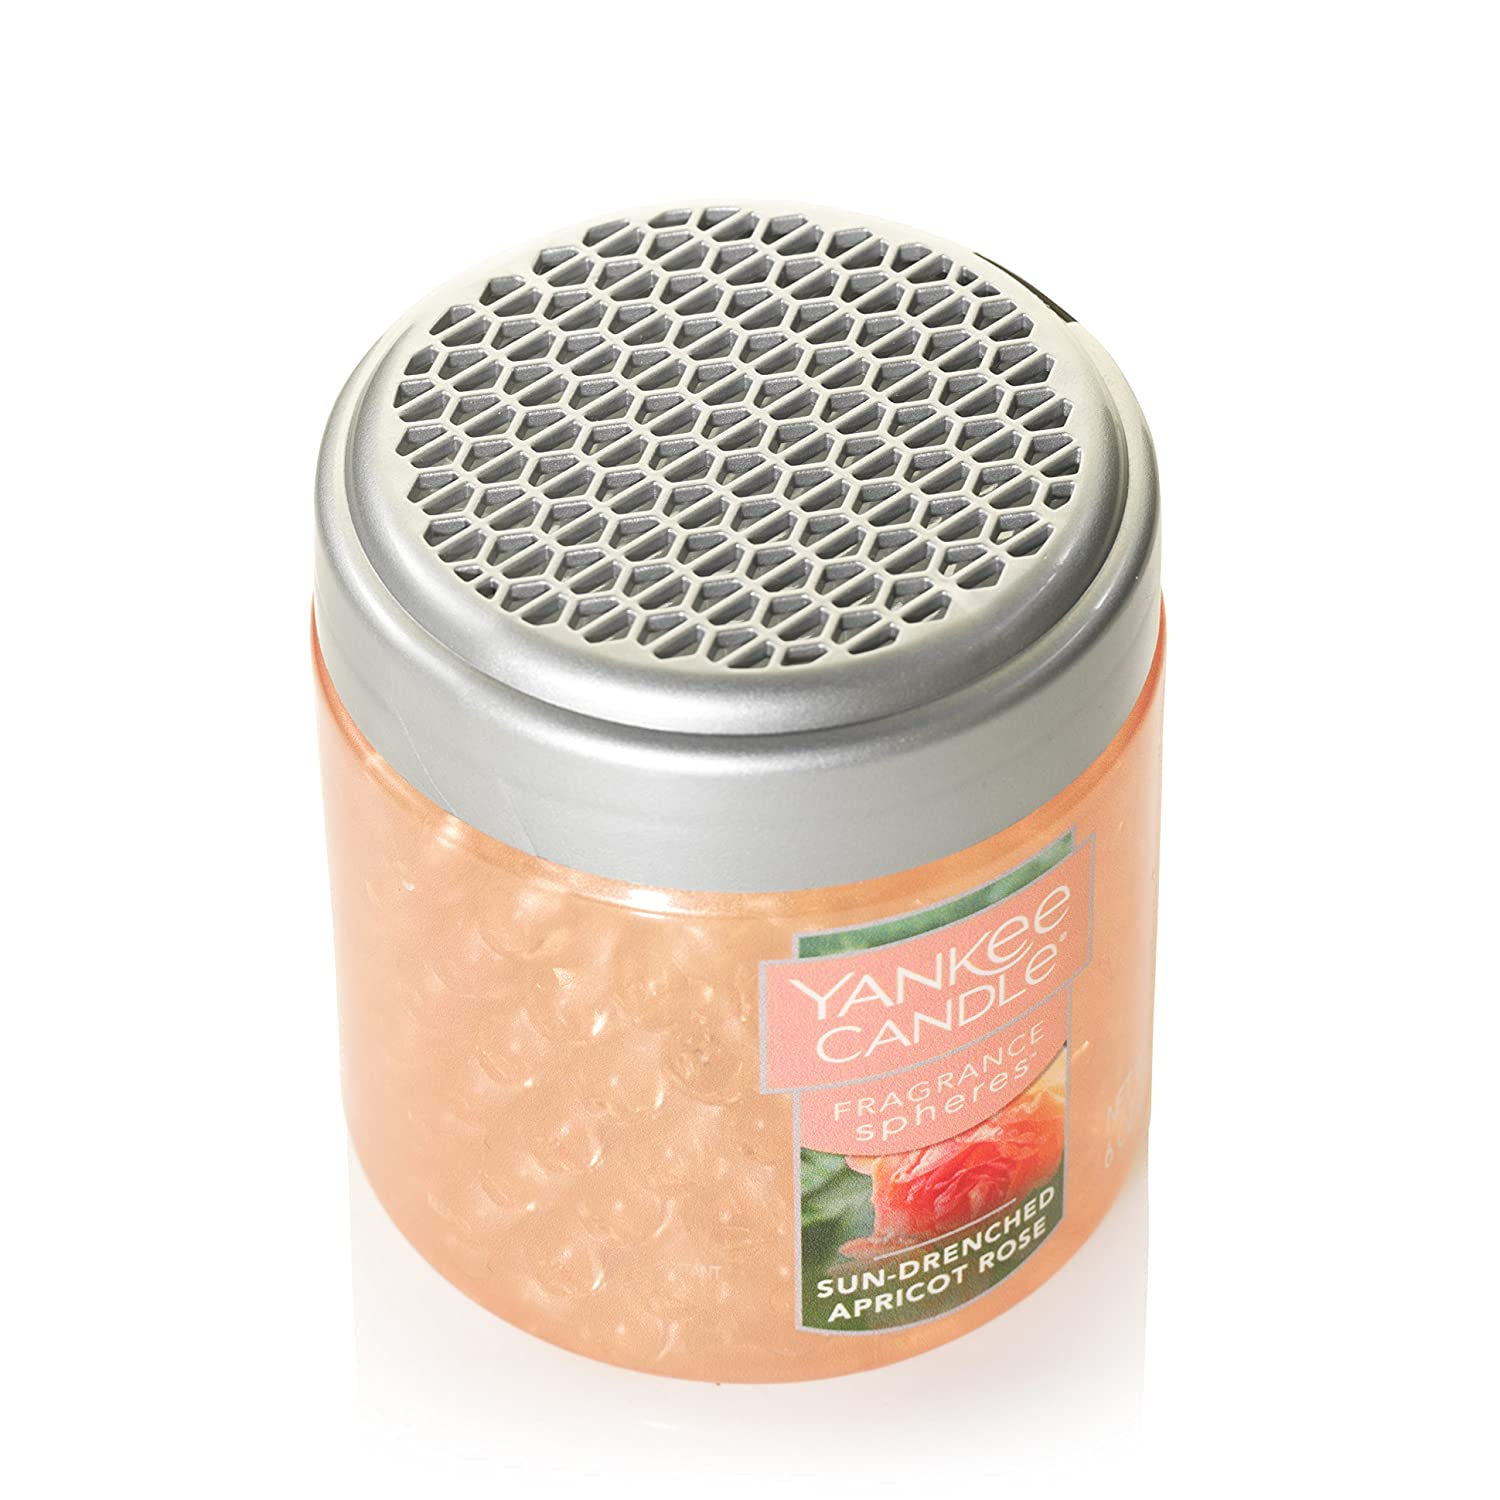 Yankee Candle Large Jar Candle Sun-Drenched Apricot Rose 1577126Z